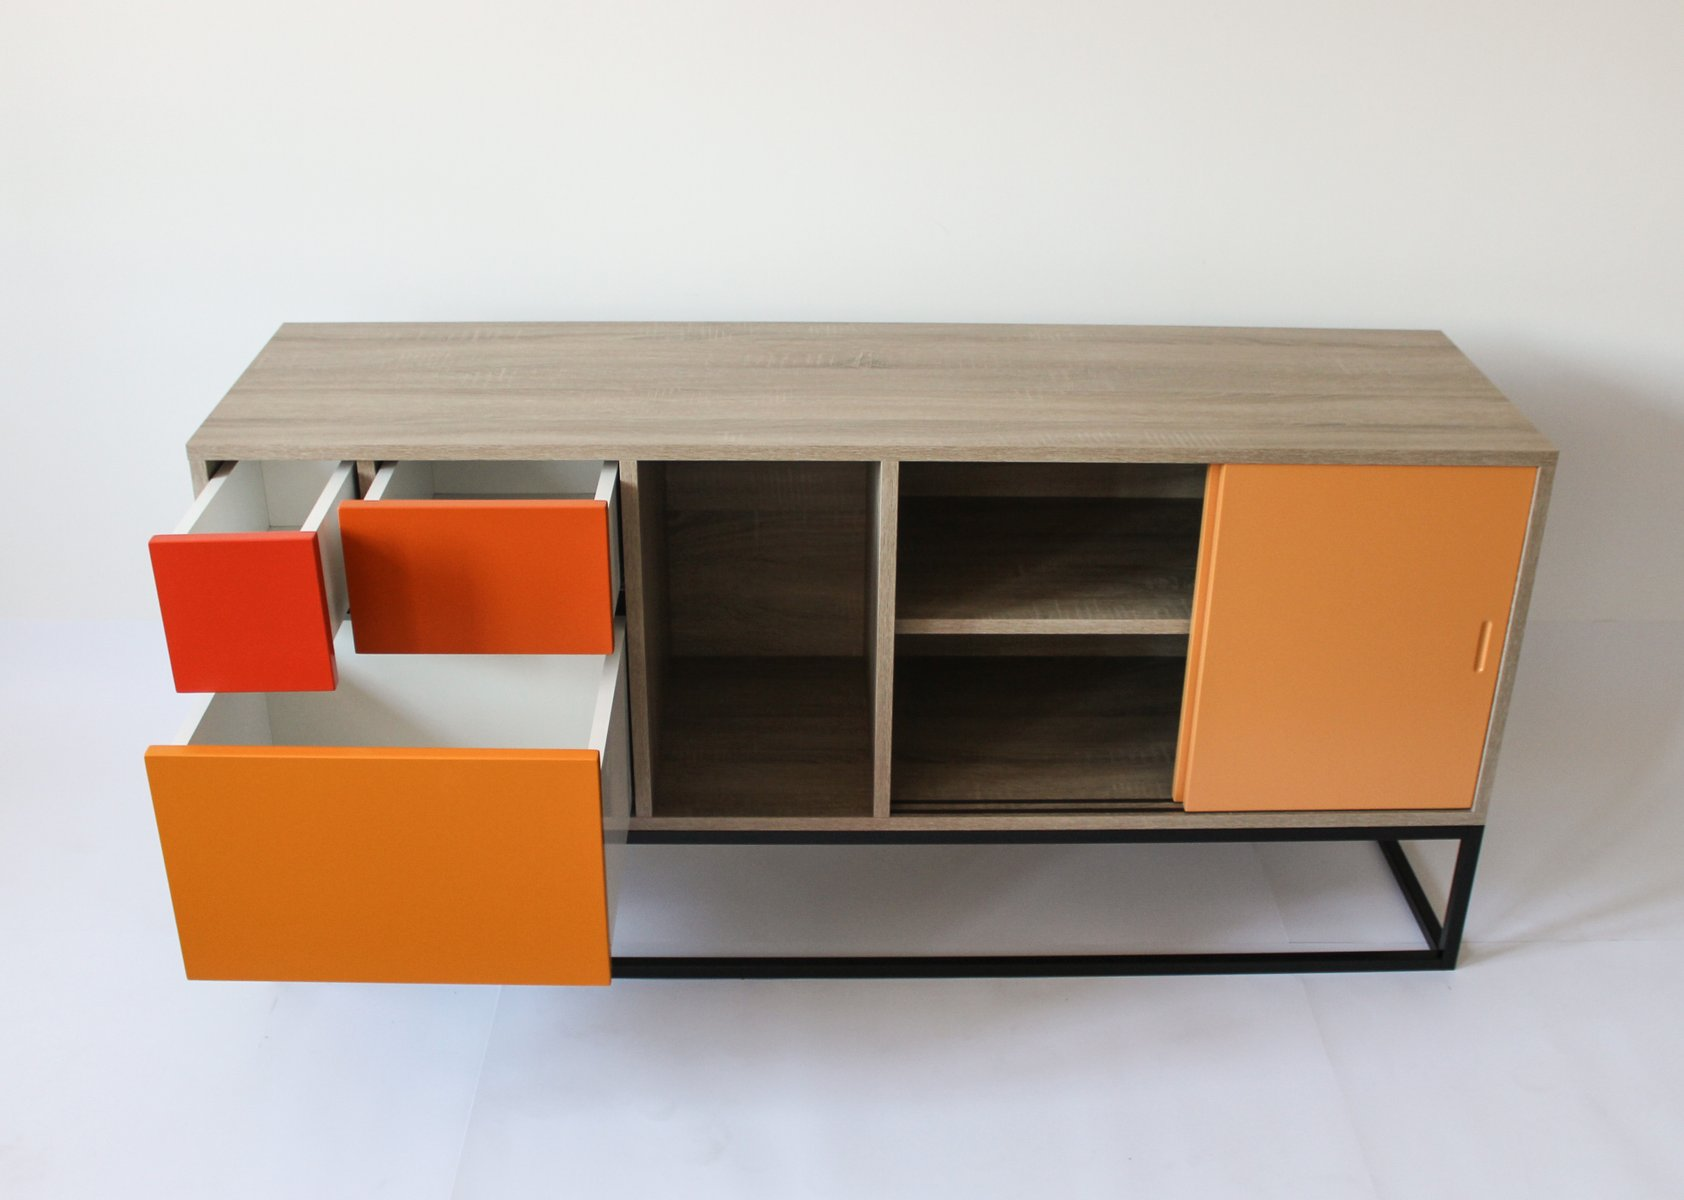 Blue real sideboard by studio deusdara for sale at pamono for Sideboard real